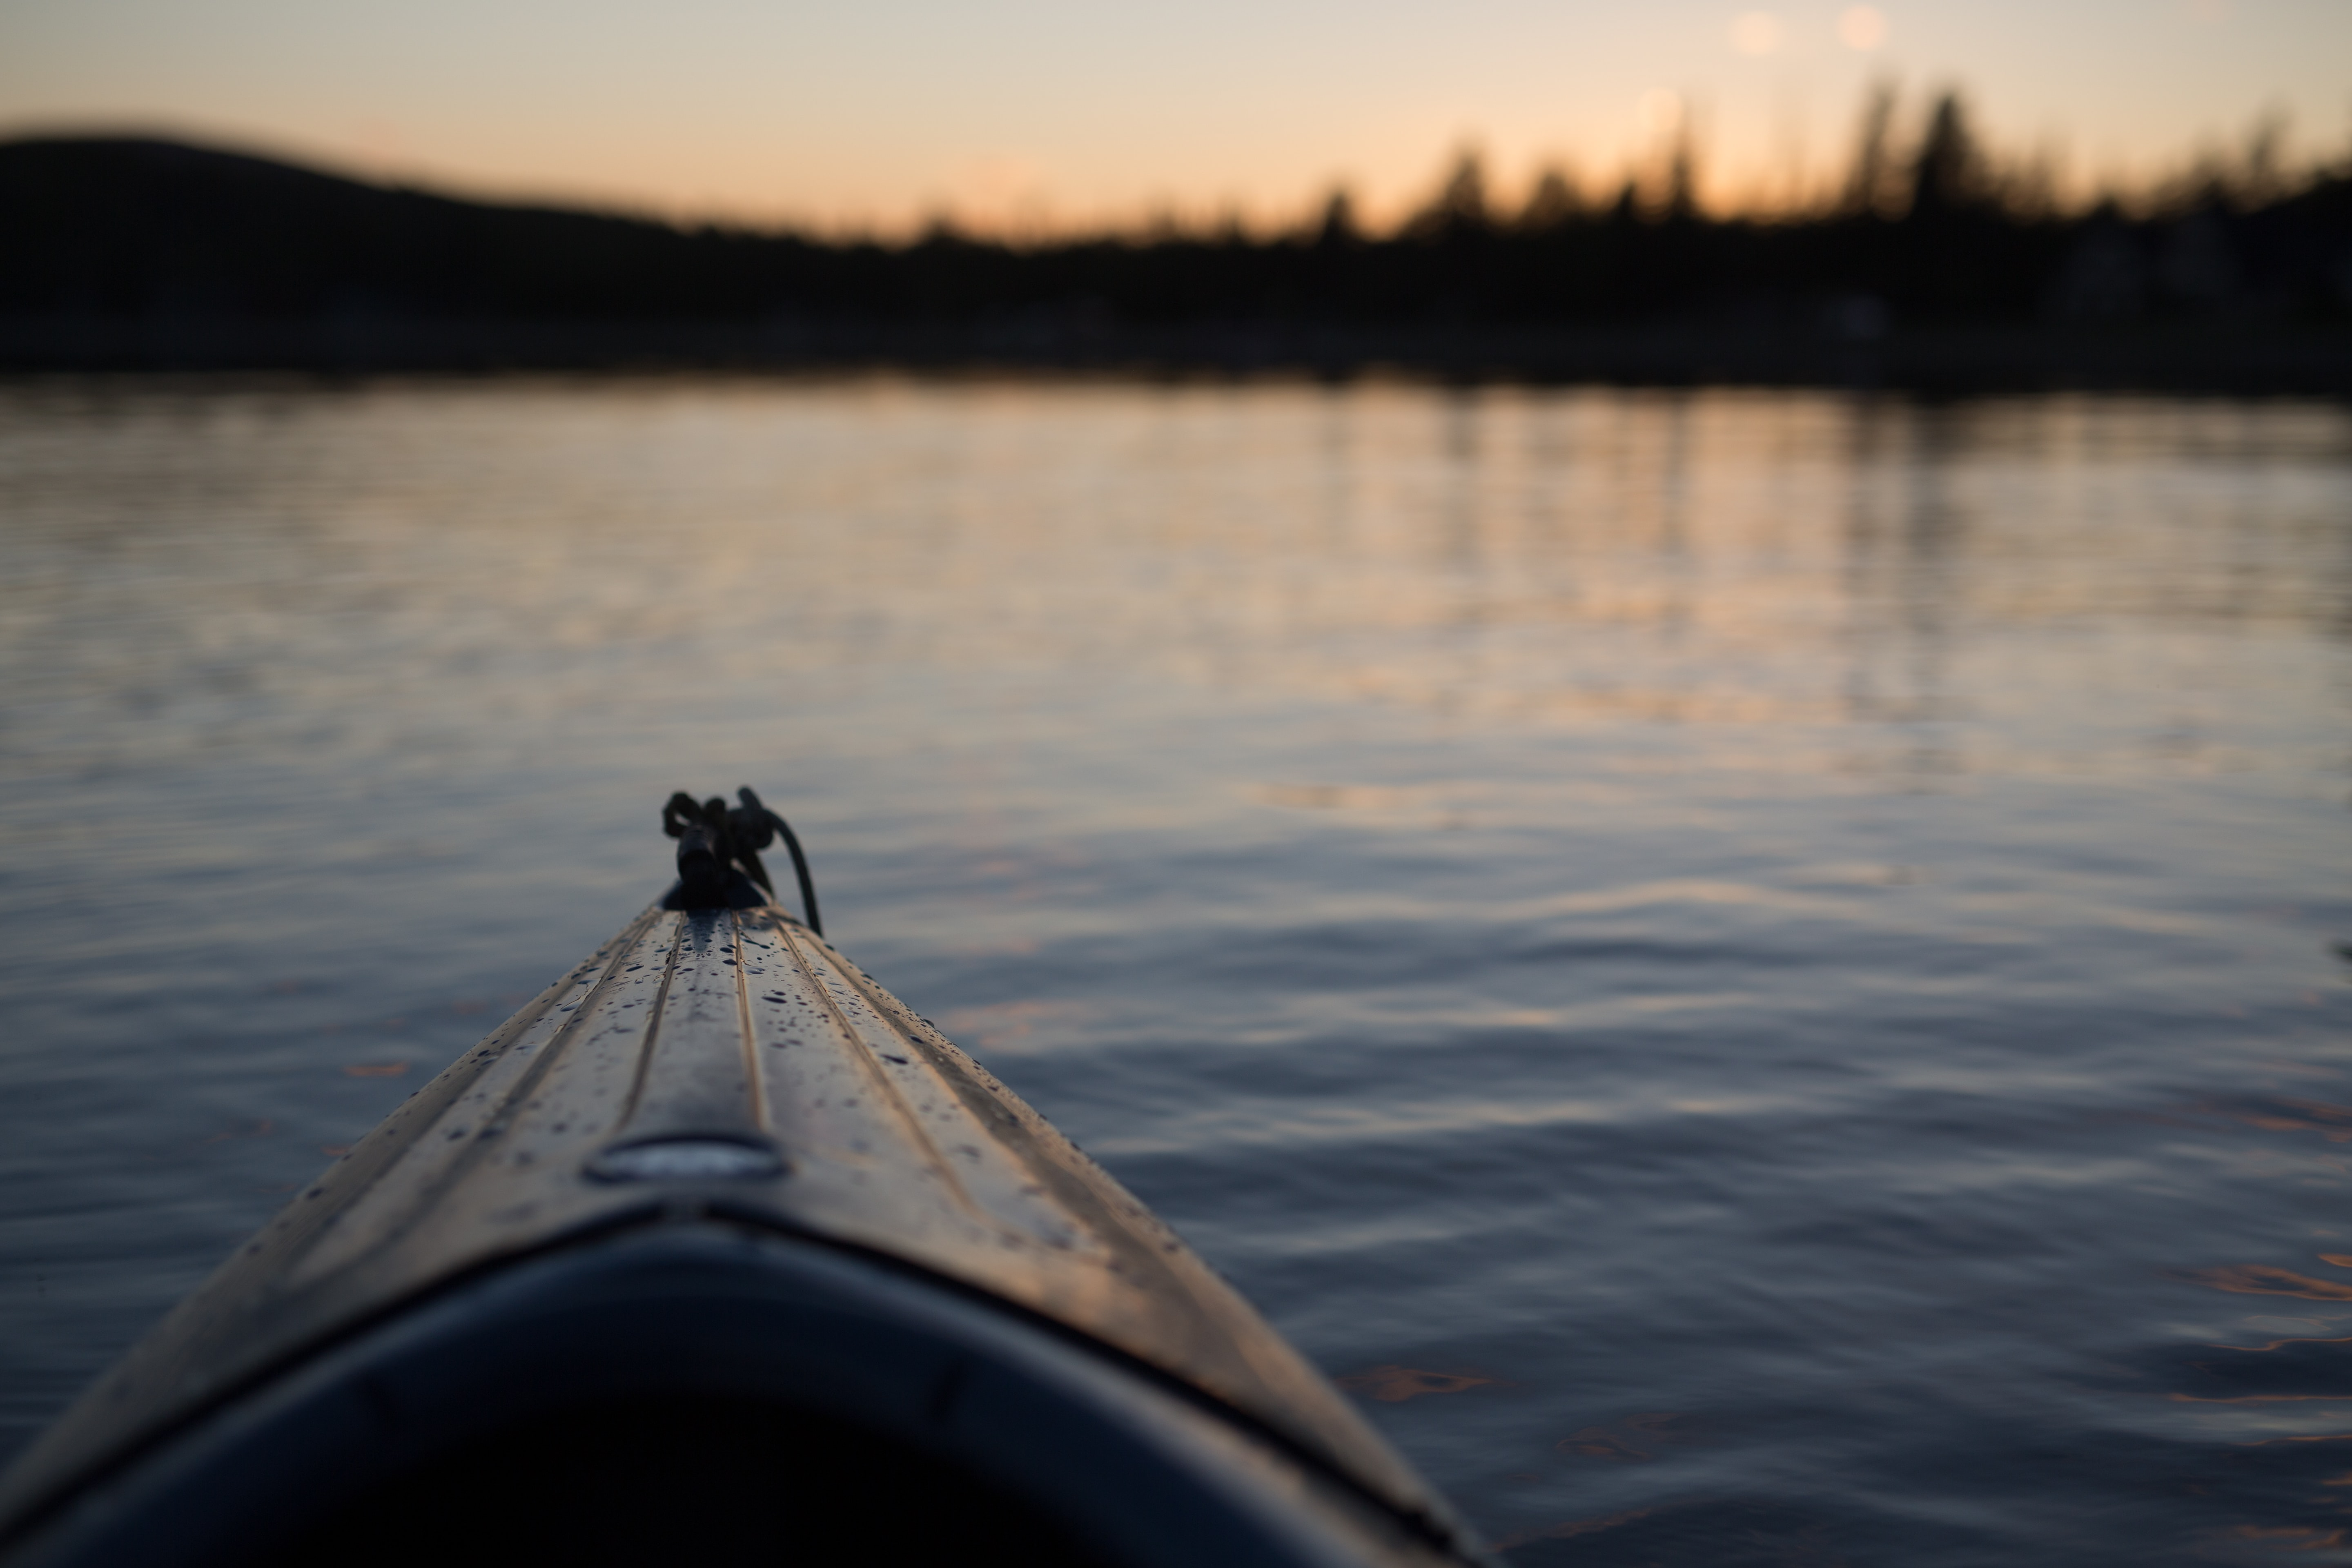 The front of a canoe floating in the river covered with water droplets at sunset or sunrise